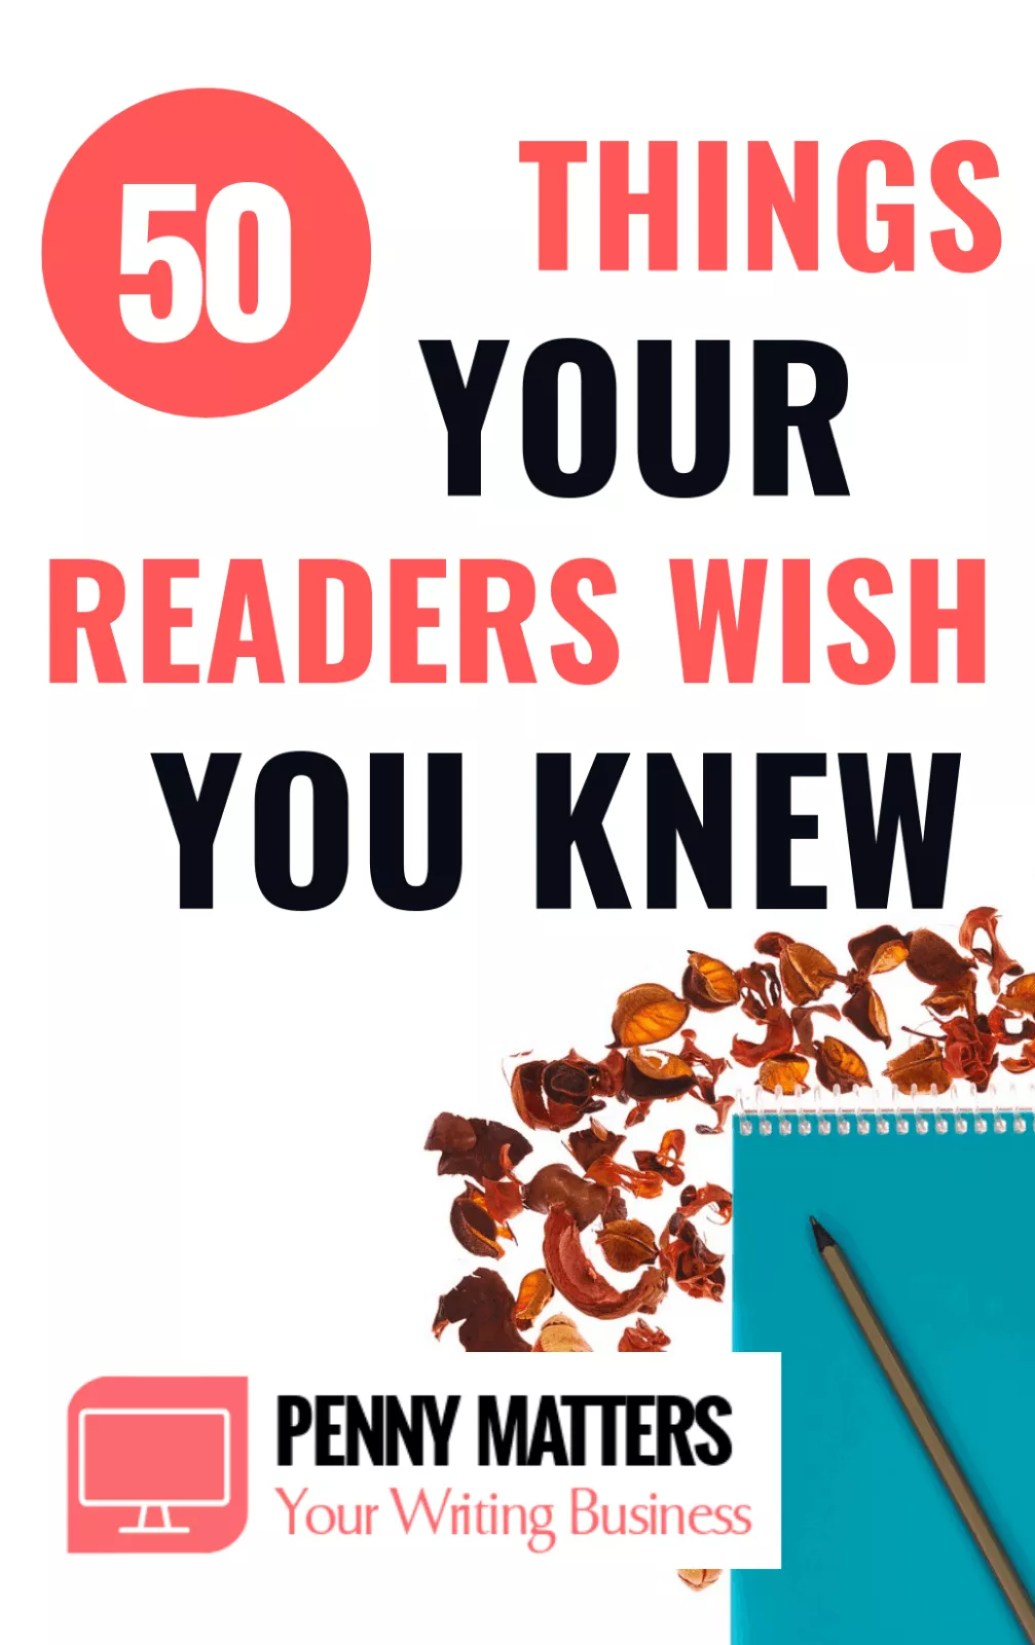 Things Your Readers Wish You Knew About Them